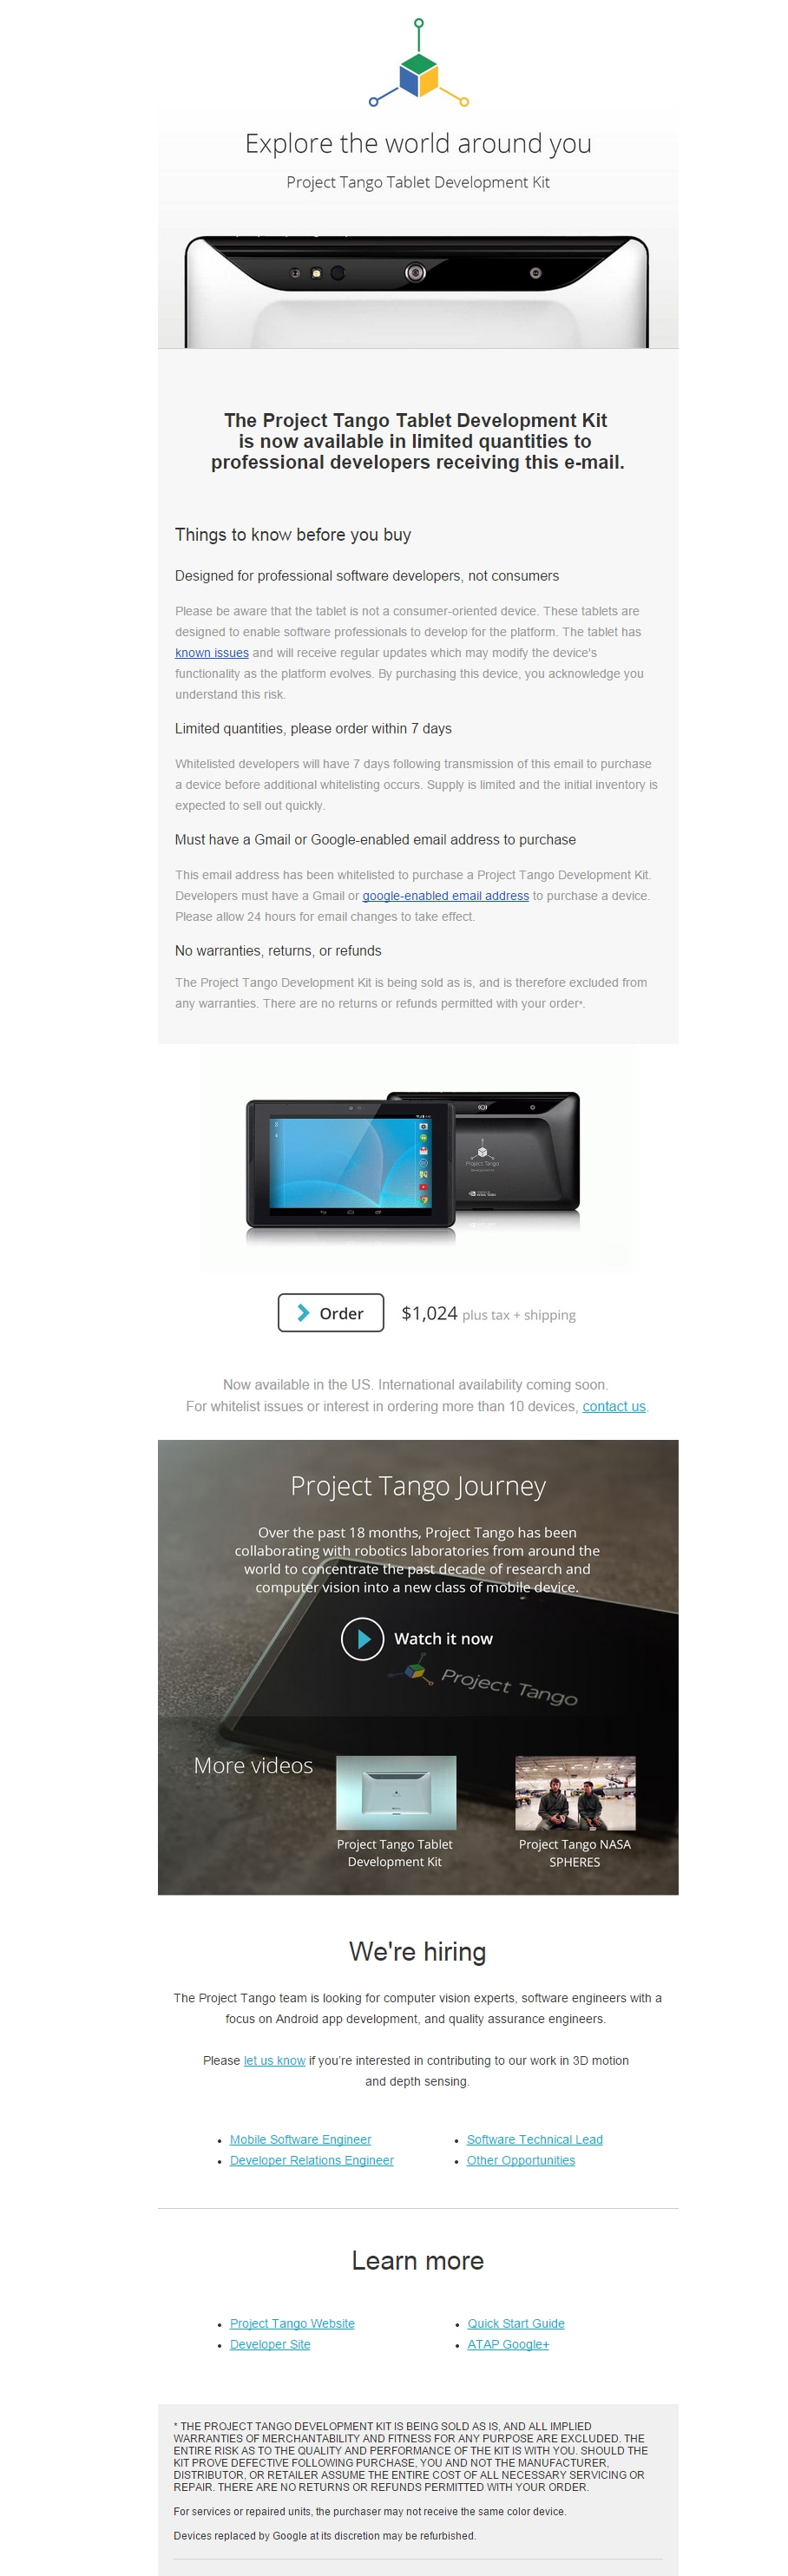 mail project tango acquisto